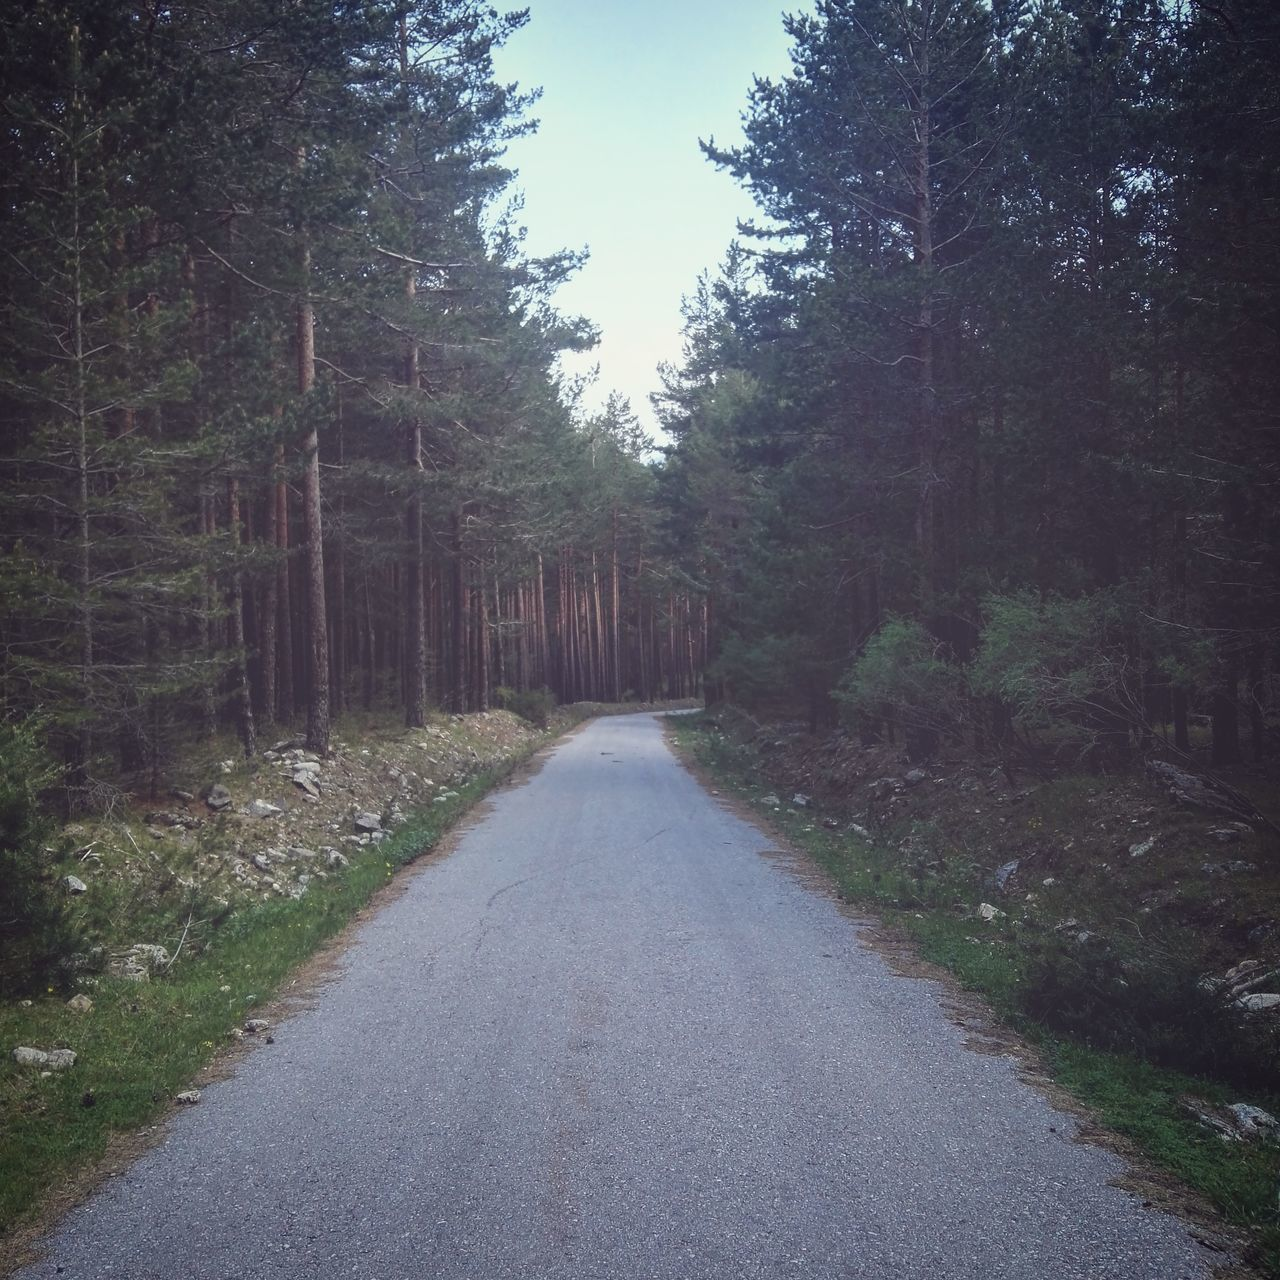 Lonely way. During a pleasant walk through the mountain we find with this abandoned road. The Essence Of Summer Trees Forest Landscape Nature Mountain Road Abandoned Abandoned Road Life Is Beautiful Awesome Places Huawei HuaweiP8 Photooftheday Feel The Journey Segovia SPAIN Sierra De Guadarrama Valsaín Naturelovers Fine Art Photography Travel Lonelyplanet Showcase June On The Way